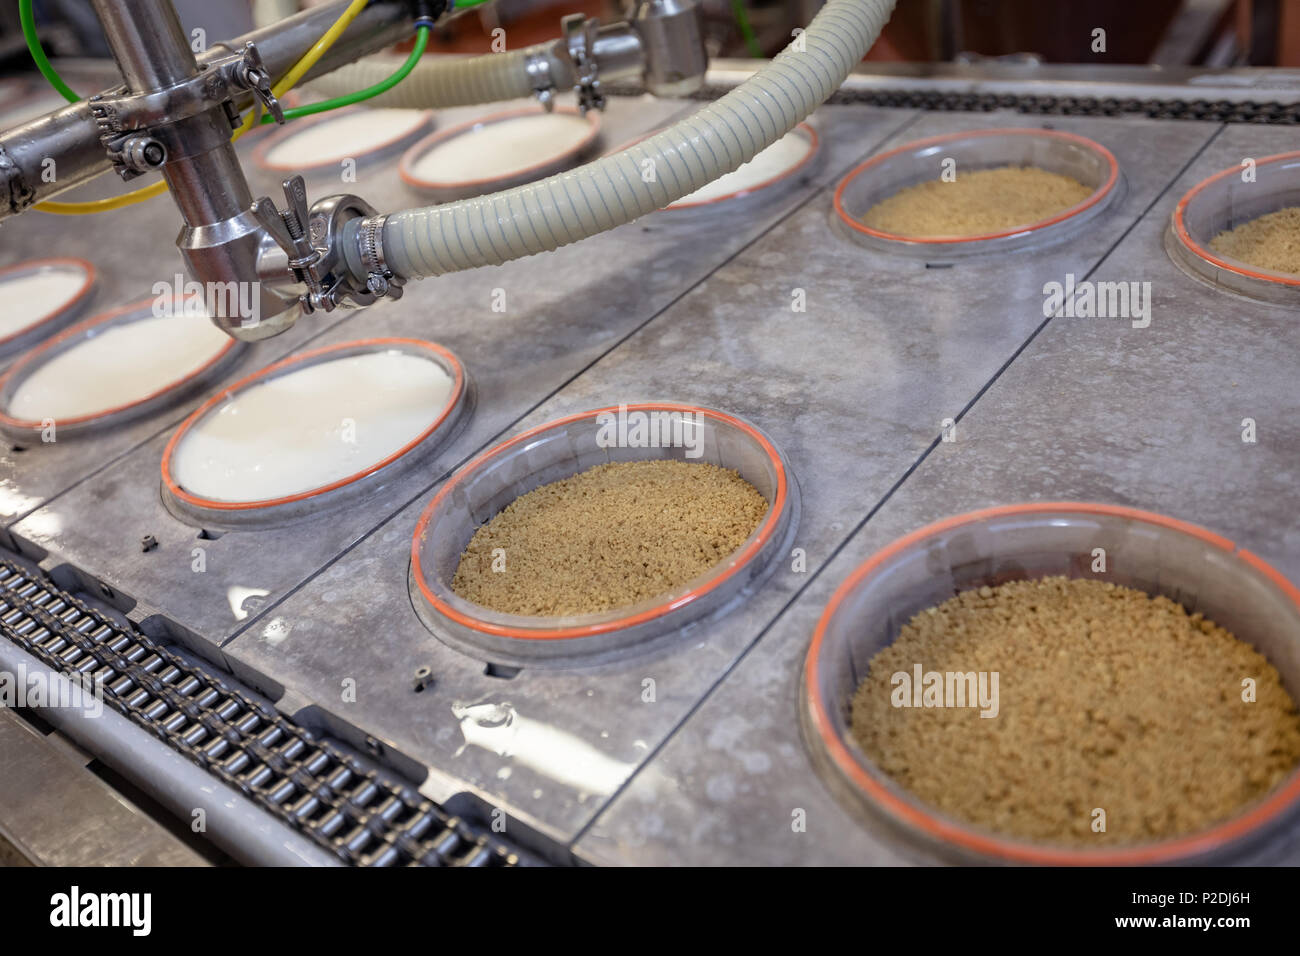 Close-up of food in the production line - Stock Image